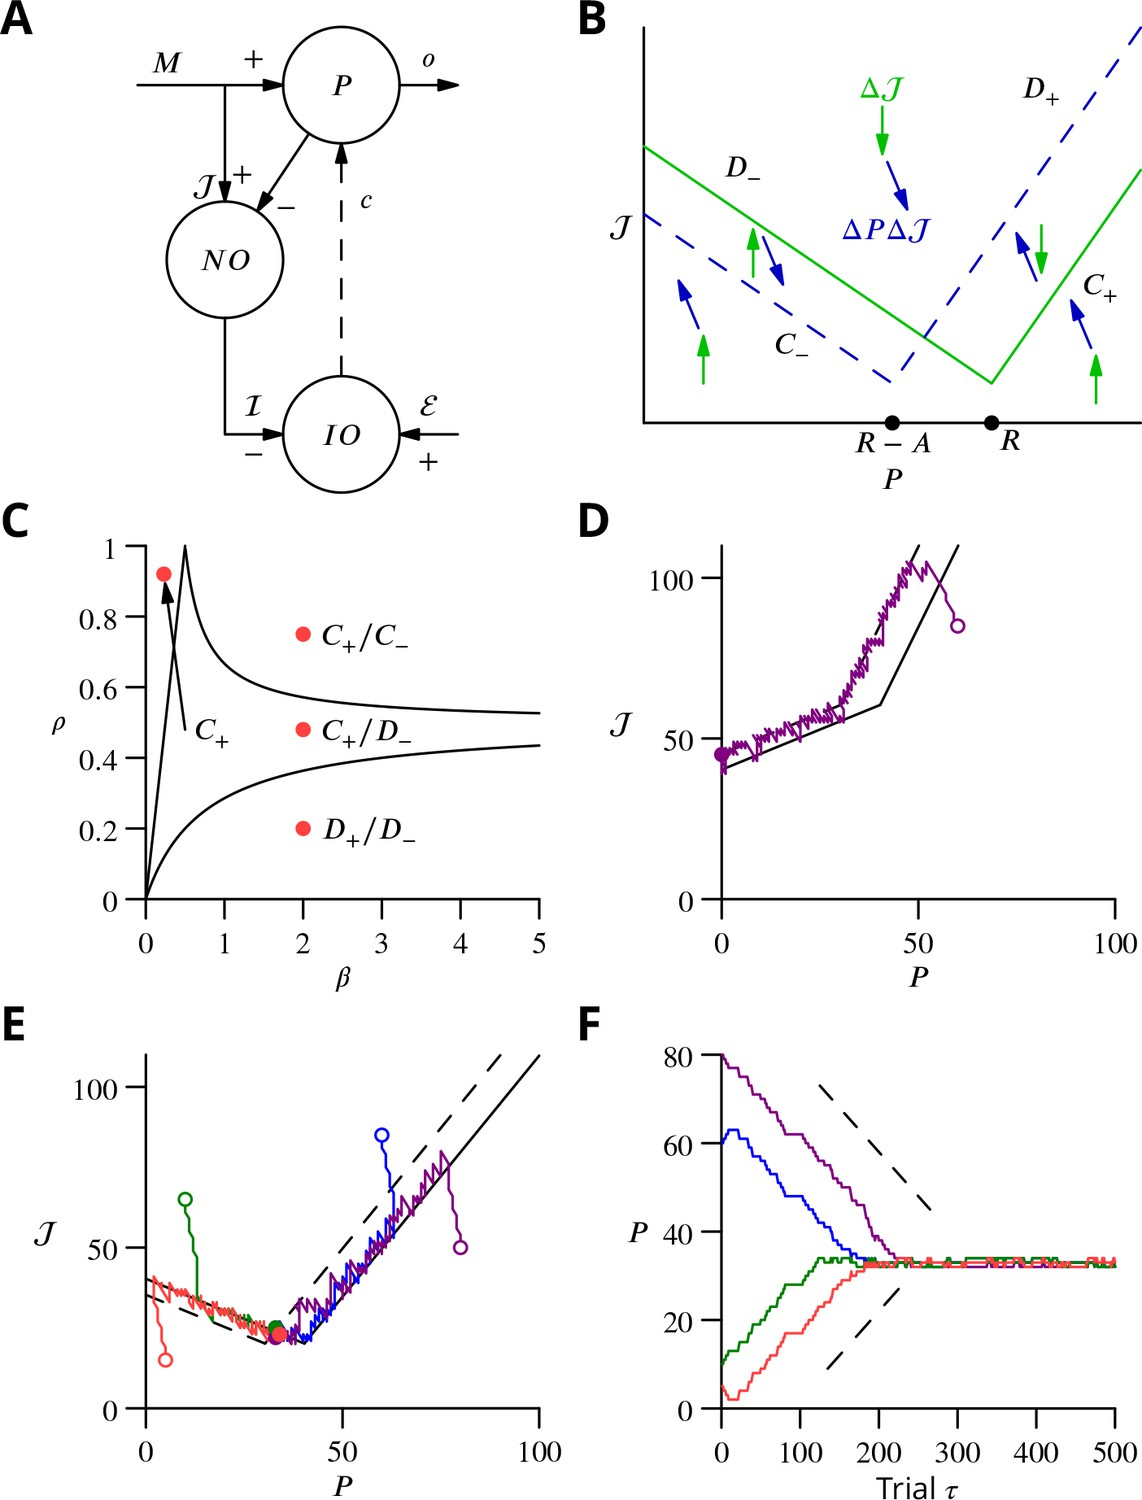 Cerebellar Learning Using Perturbations Elife Passive Networks Intuitive Explanation For Filters Electrical Single Cell Convergence Dynamics In A Reduced Version Of The Algorithm